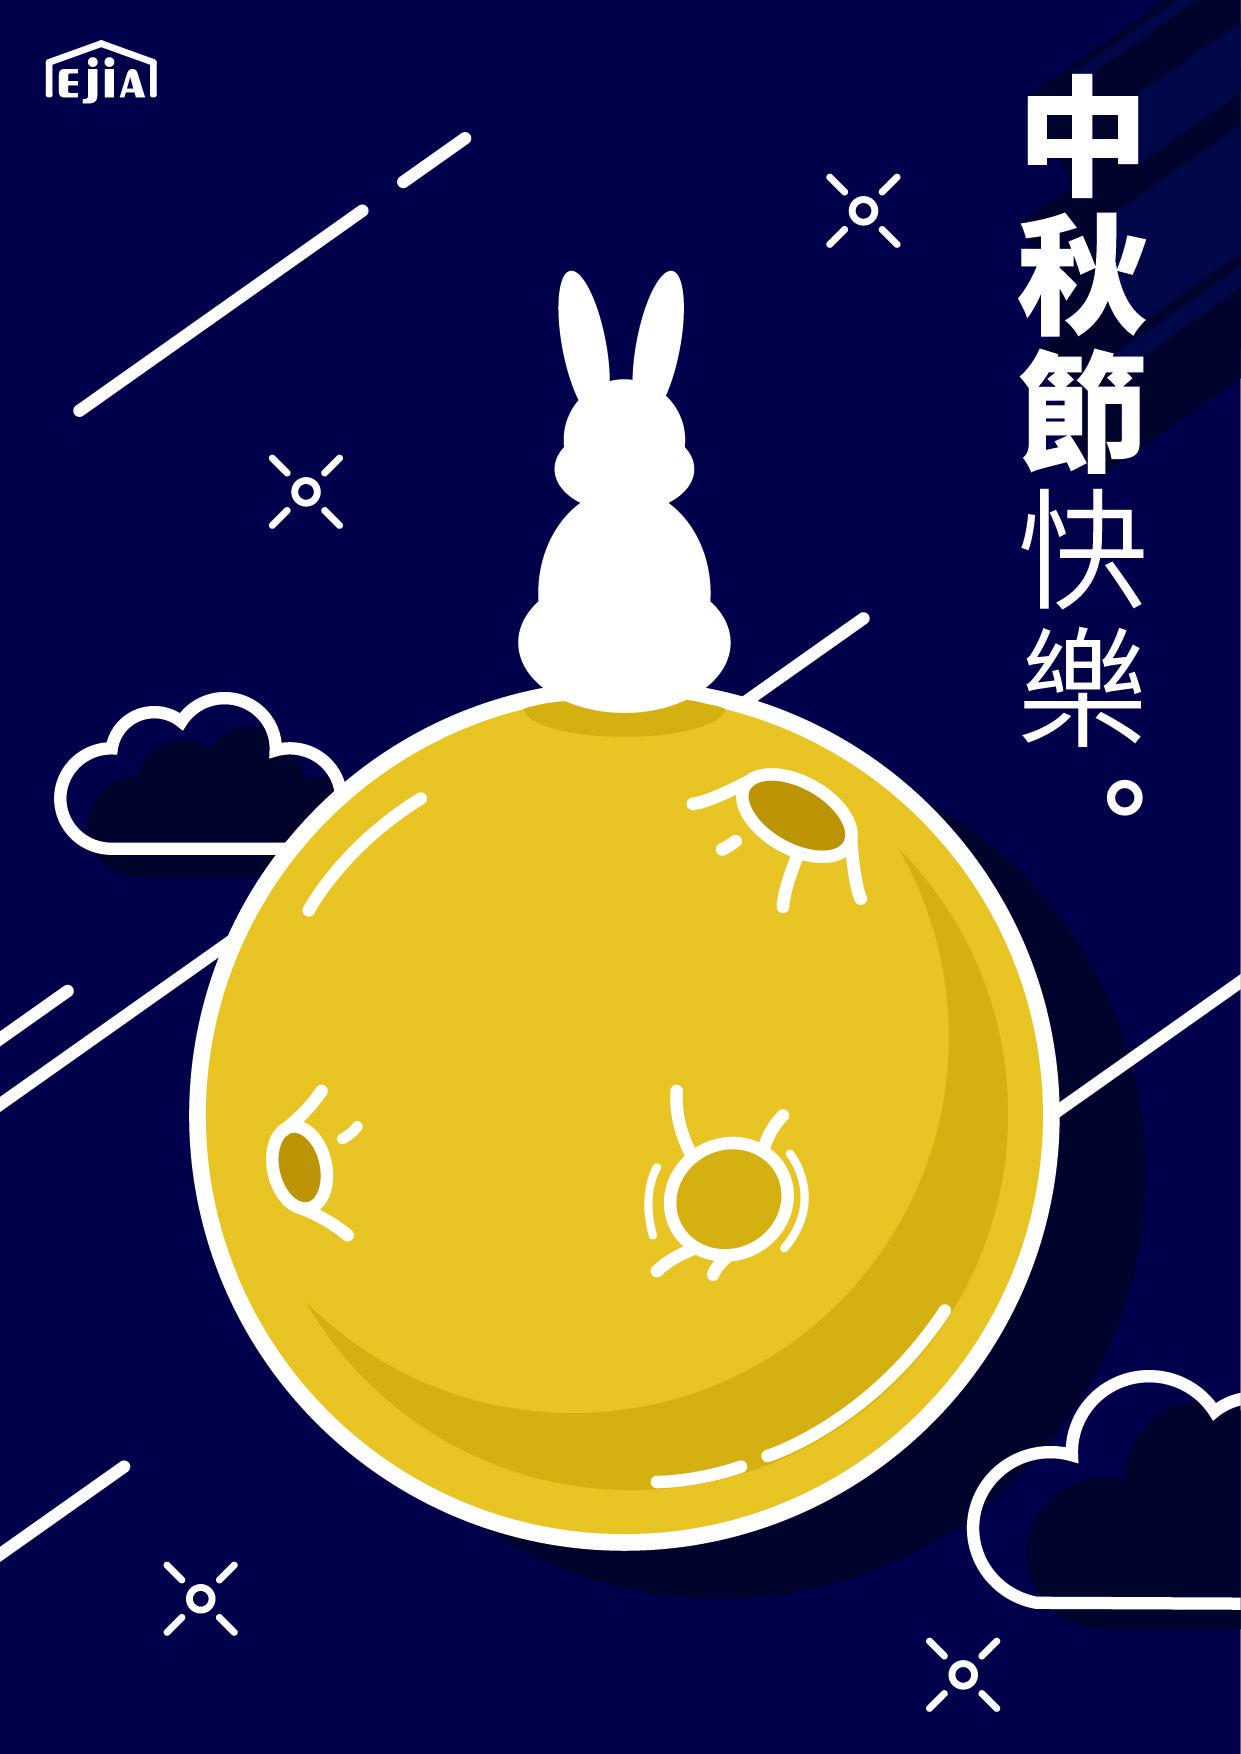 Moon Festival Card Festival Design Happy Mid Autumn Festival Moon Festival